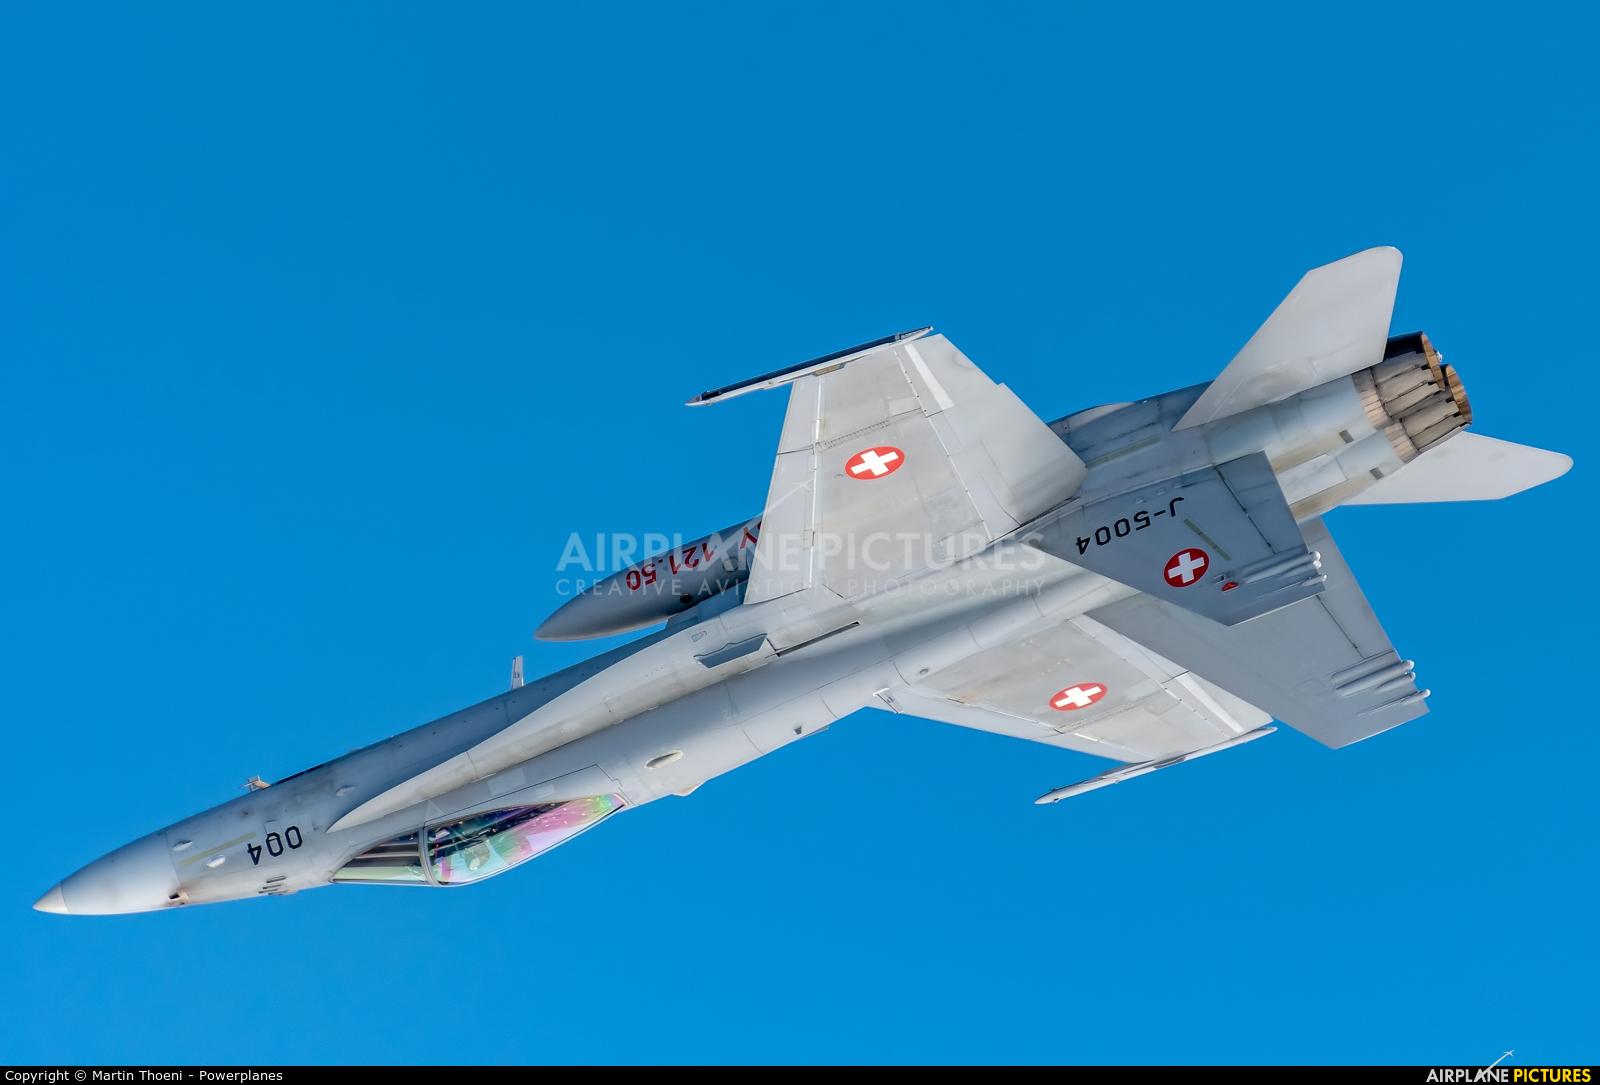 Switzerland - Air Force J-5004 aircraft at Axalp - Ebenfluh Range